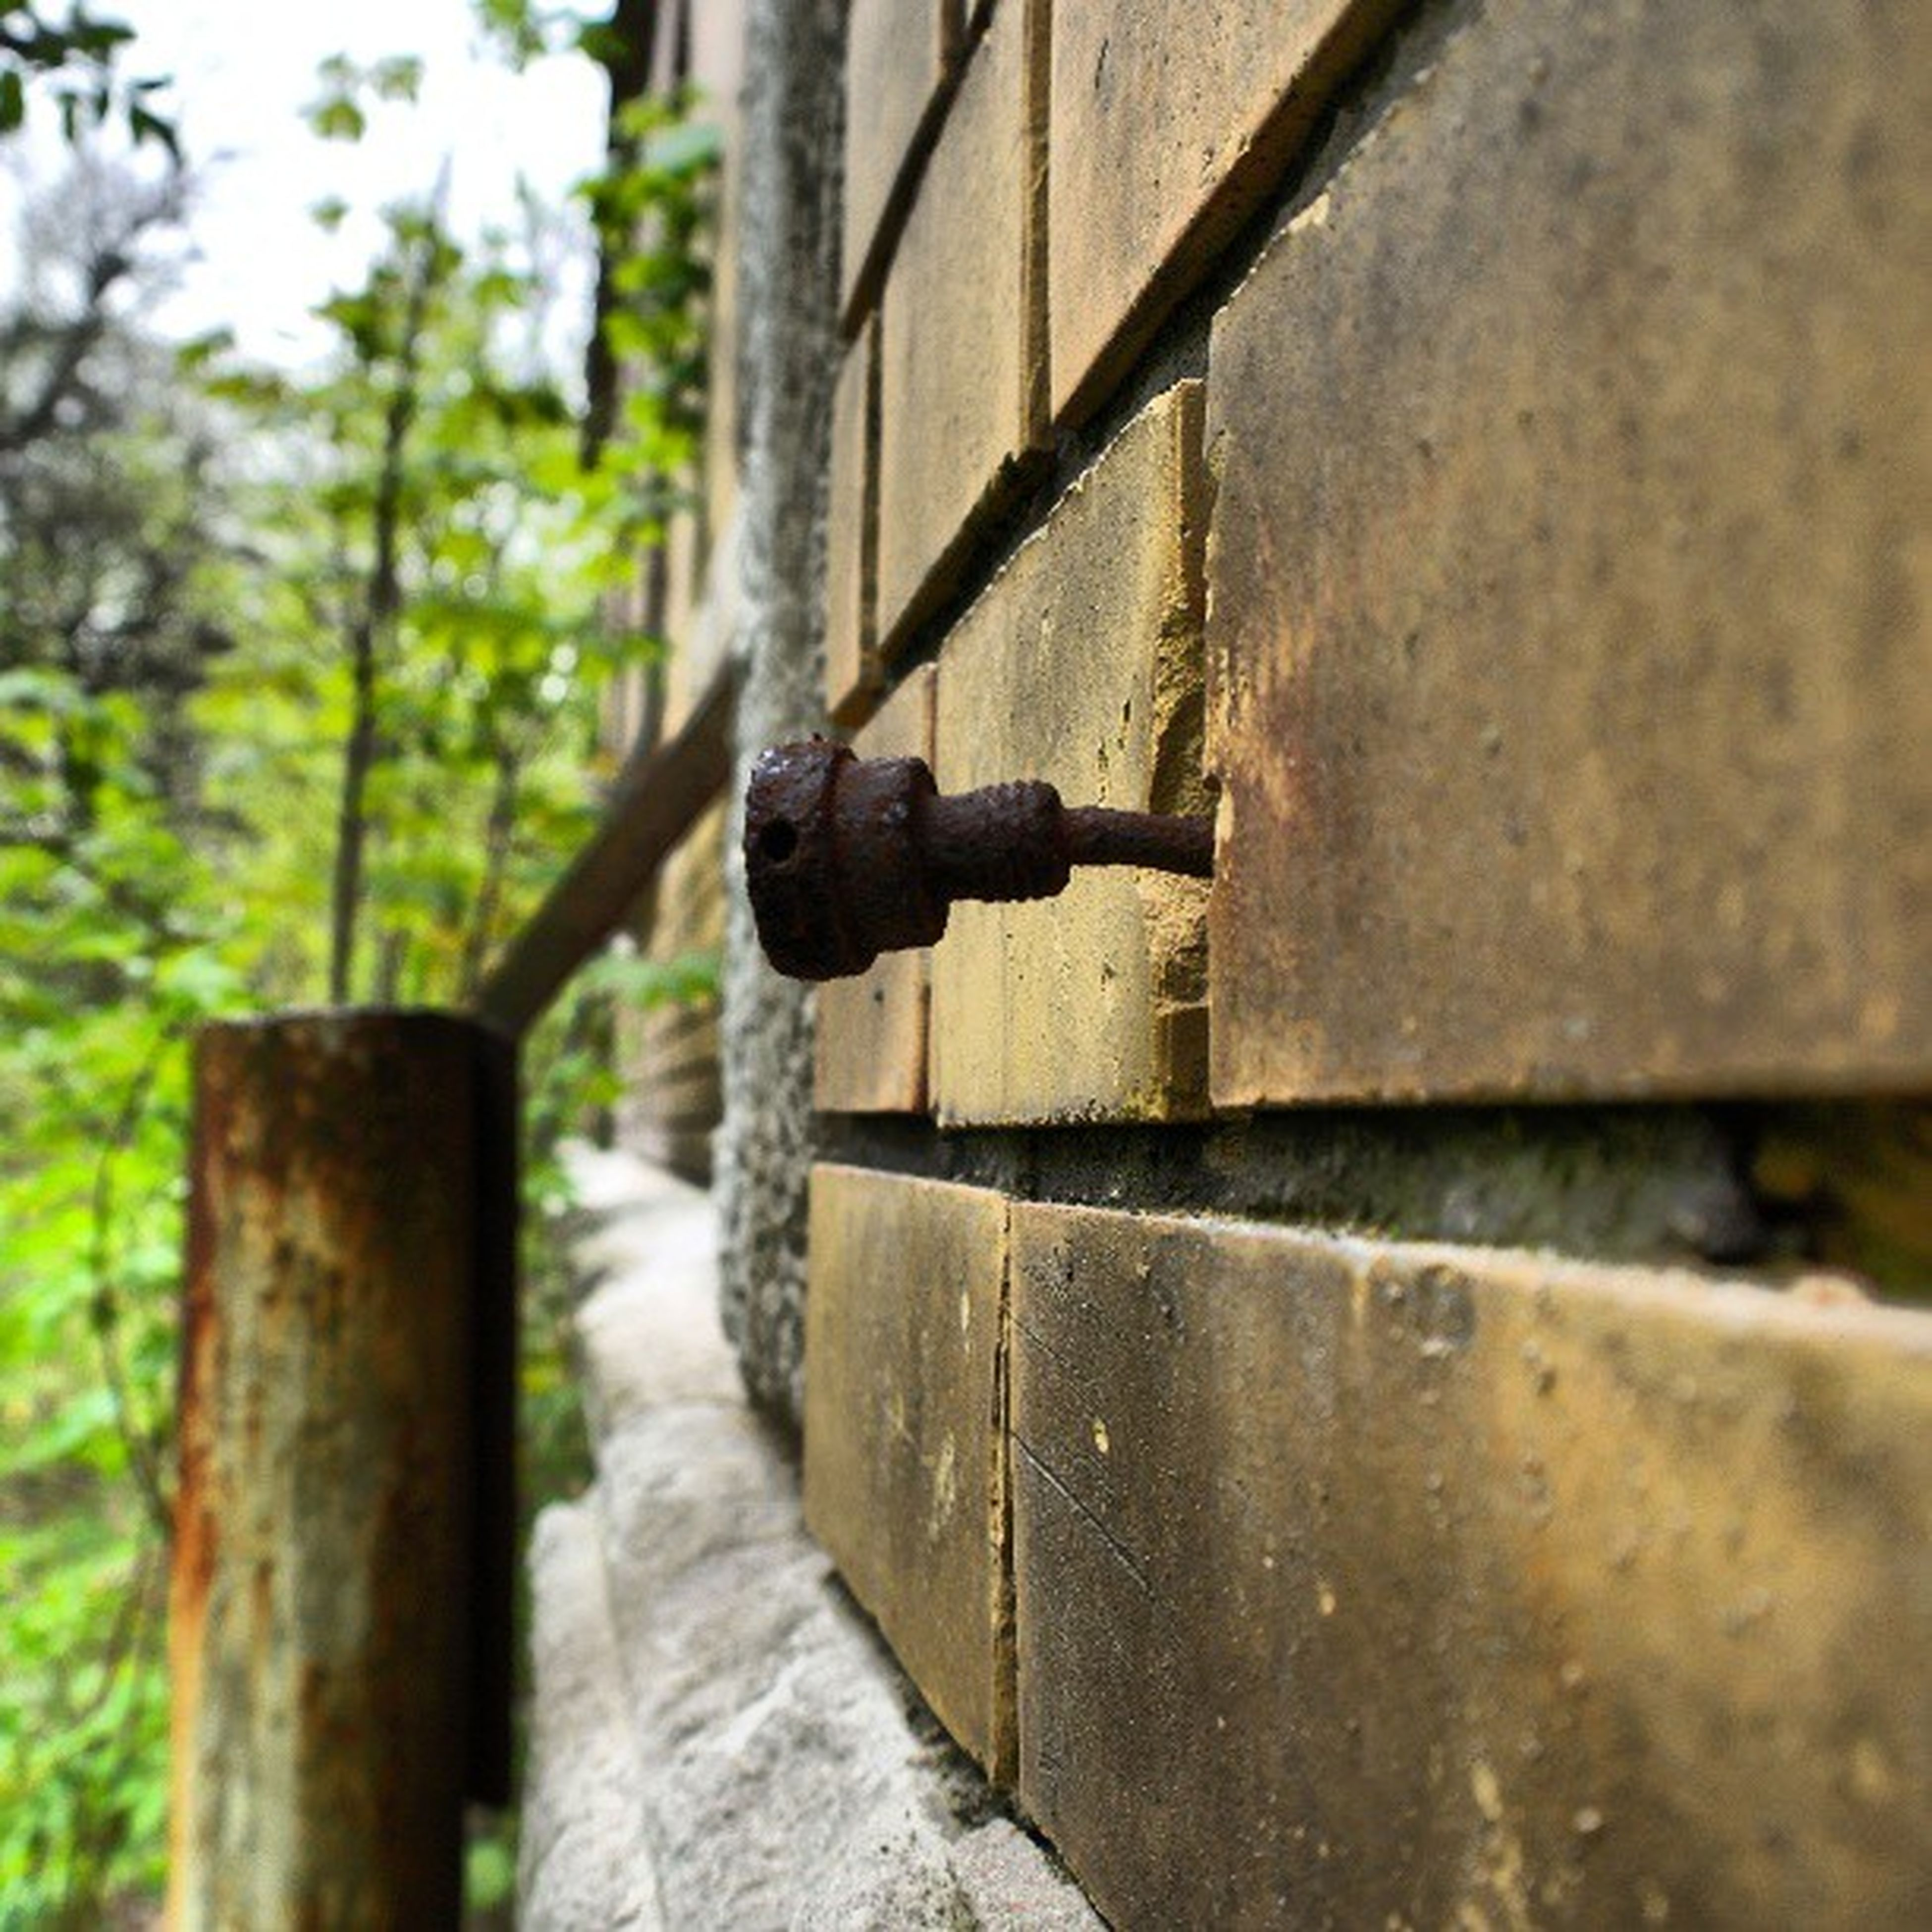 metal, focus on foreground, selective focus, railing, close-up, day, built structure, steps, the way forward, wall - building feature, outdoors, old, metallic, protection, wood - material, rusty, architecture, wall, no people, textured